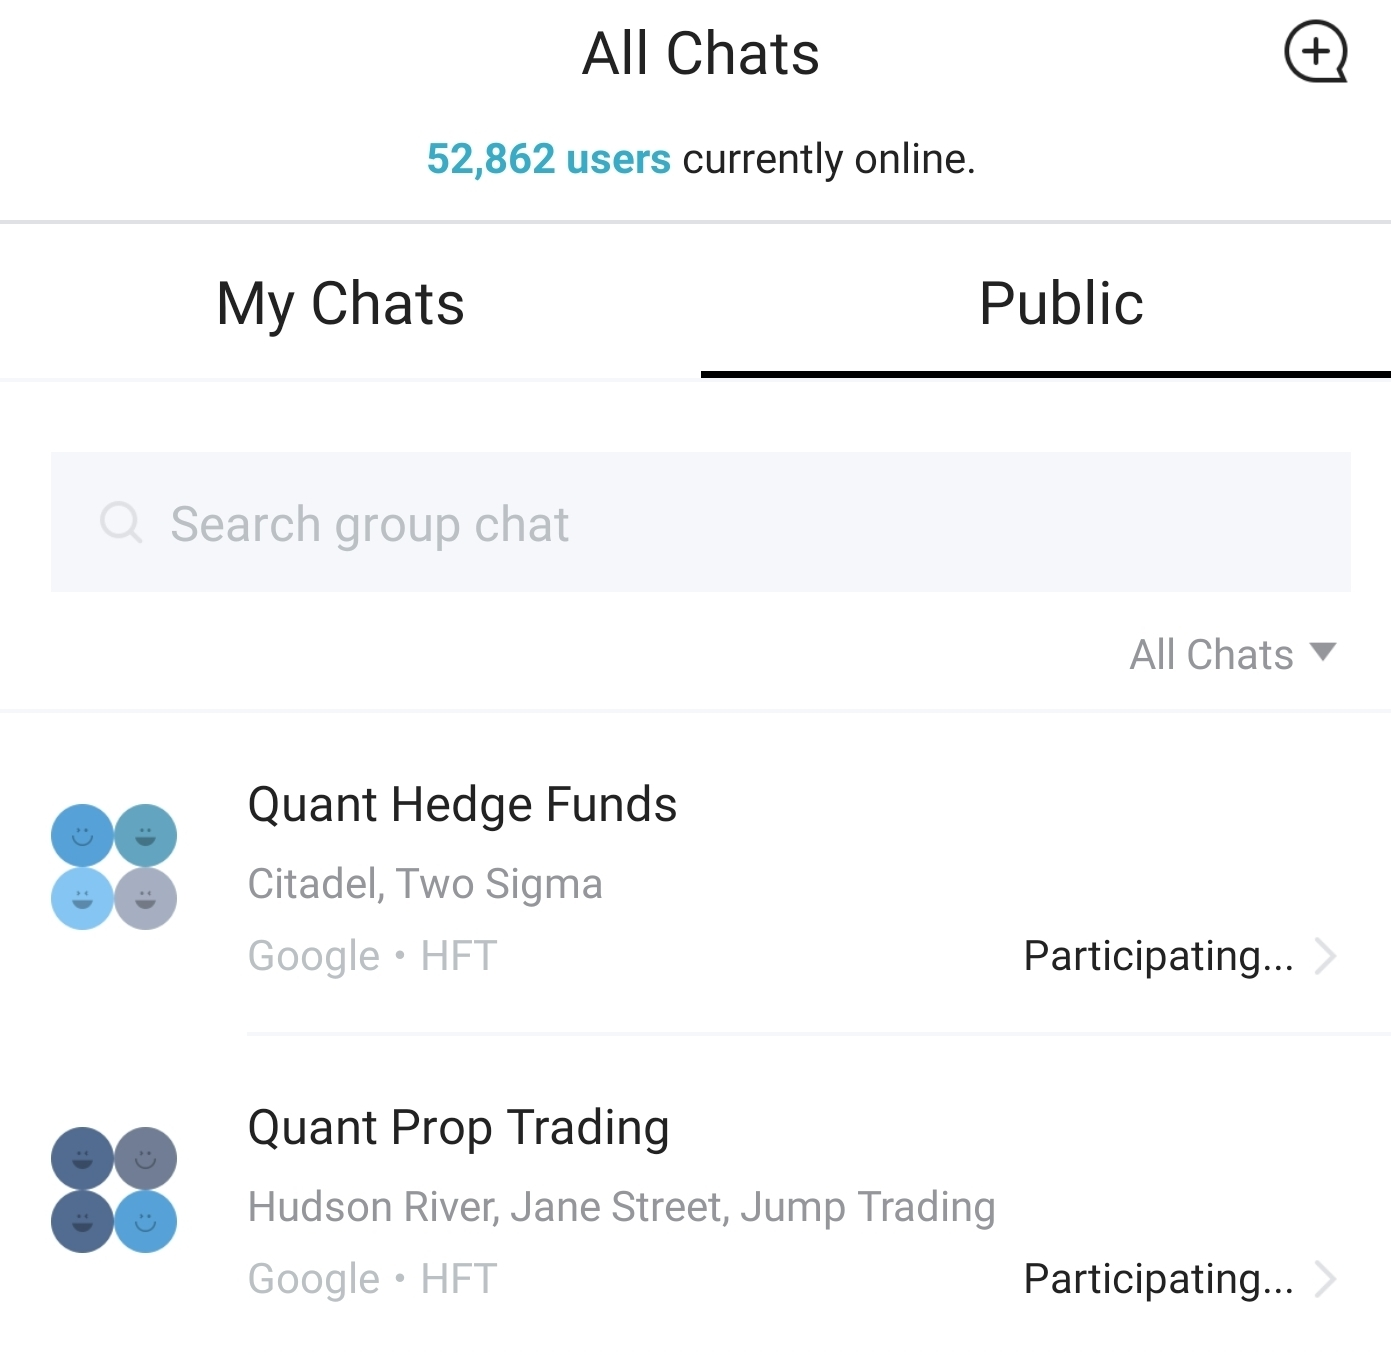 Invitation to quant HF group chat